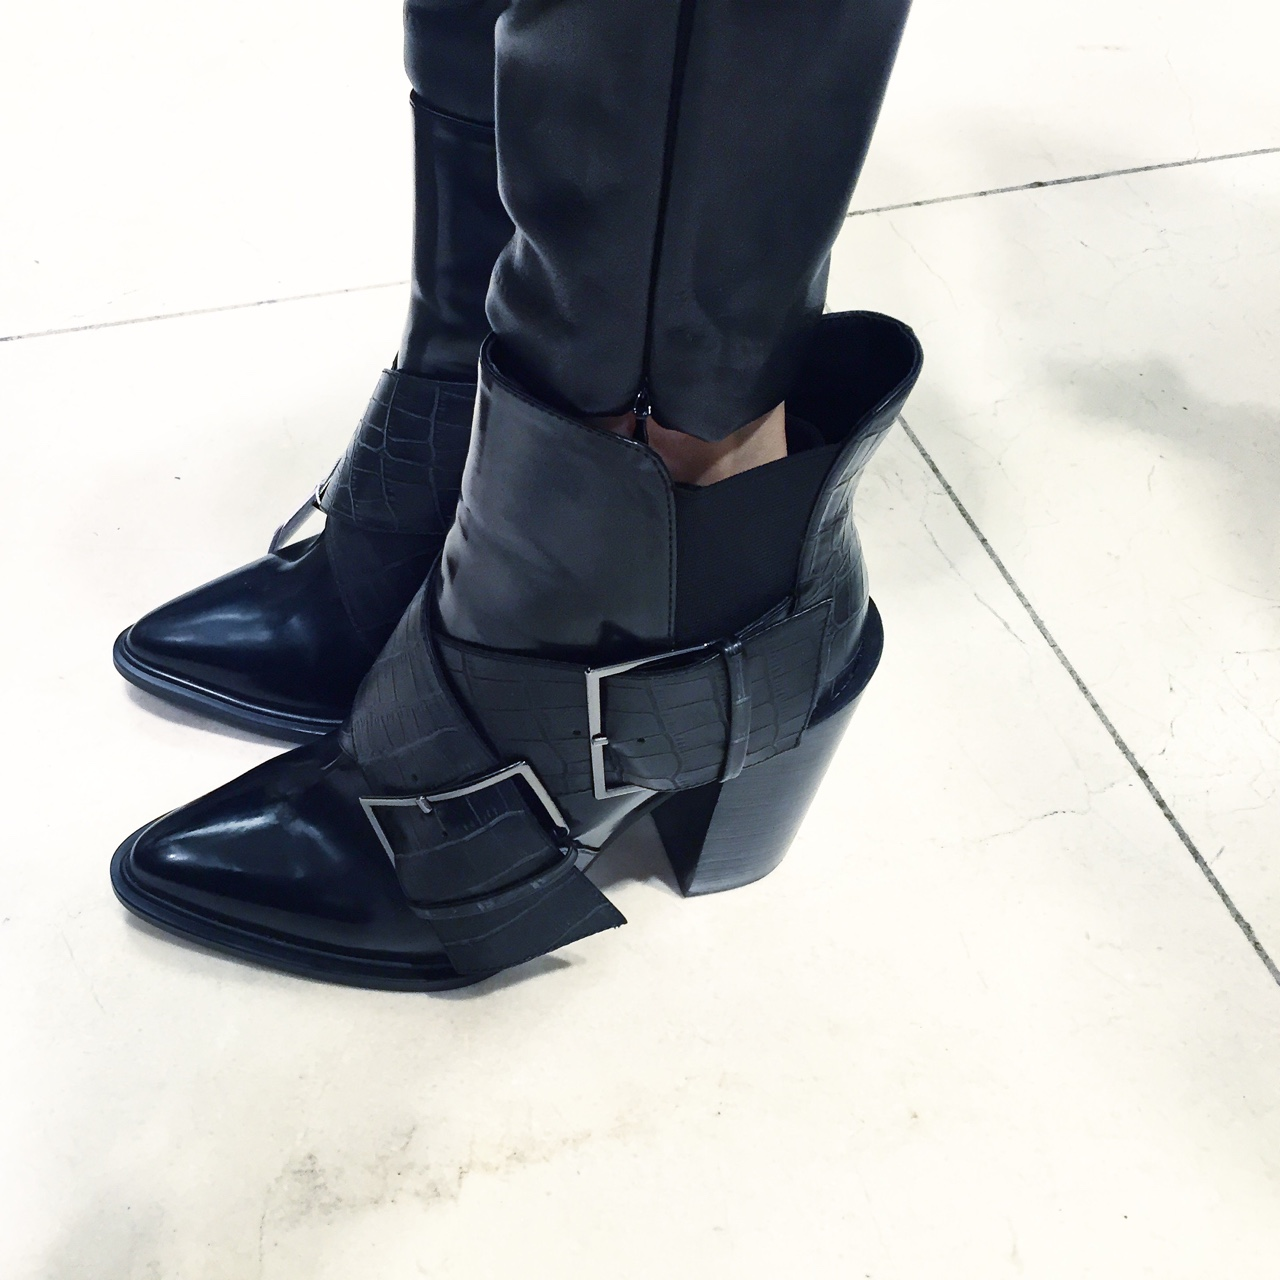 Oversized Cute Booties from Zara with Oversized Straps & Buckles and Croc Embossed Leather. //SHE